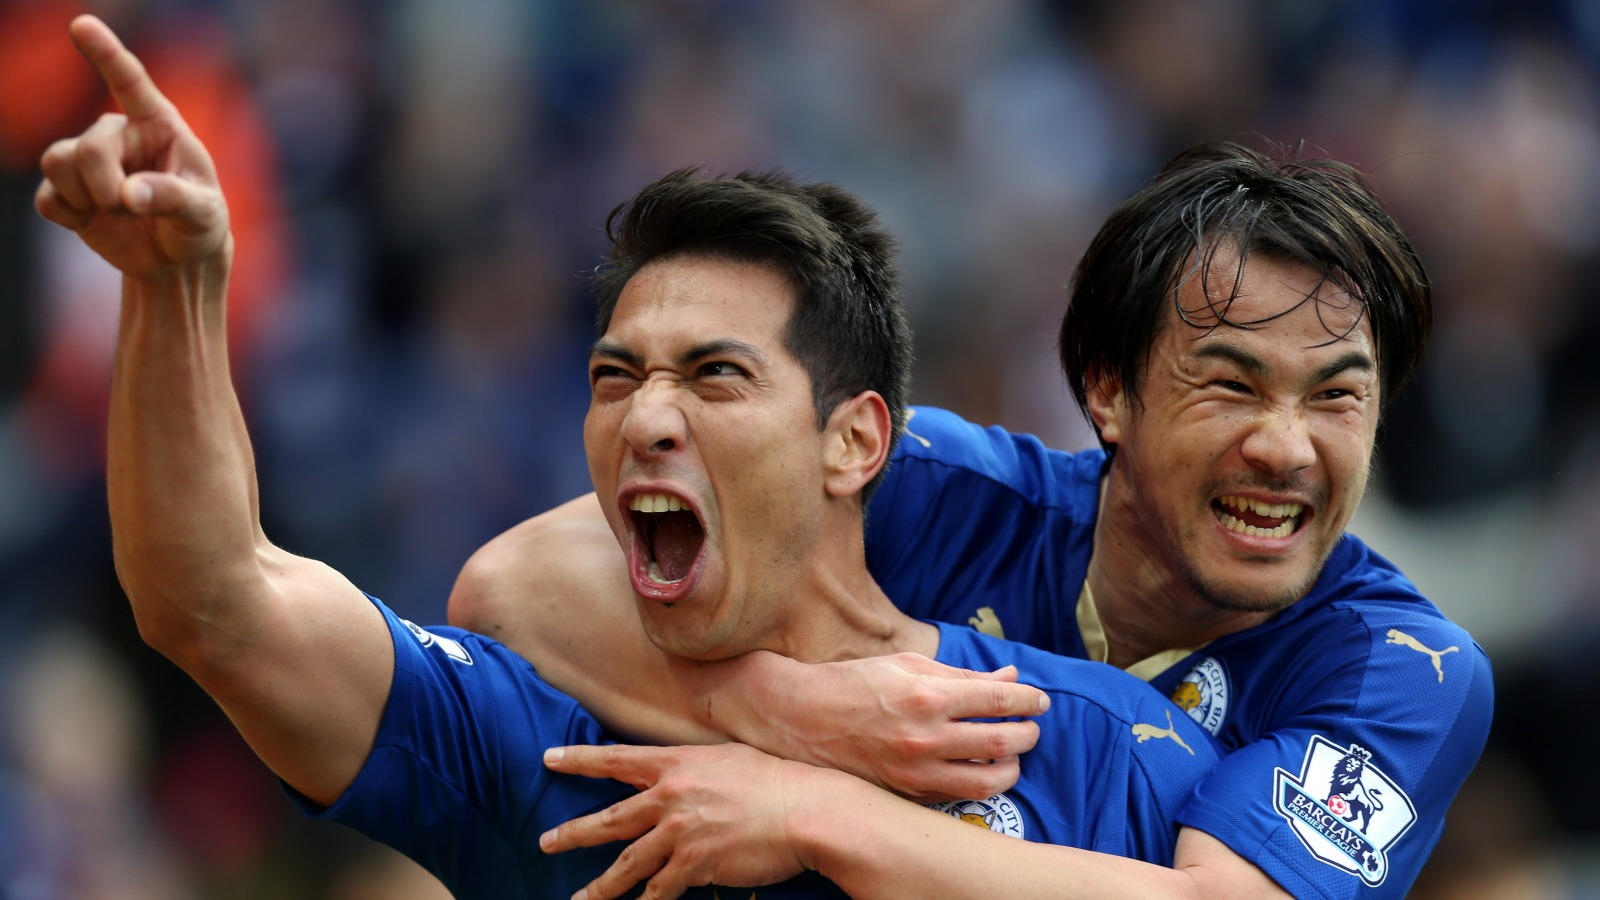 Leicester crush Swansea without Vardy, close in on Premier League title